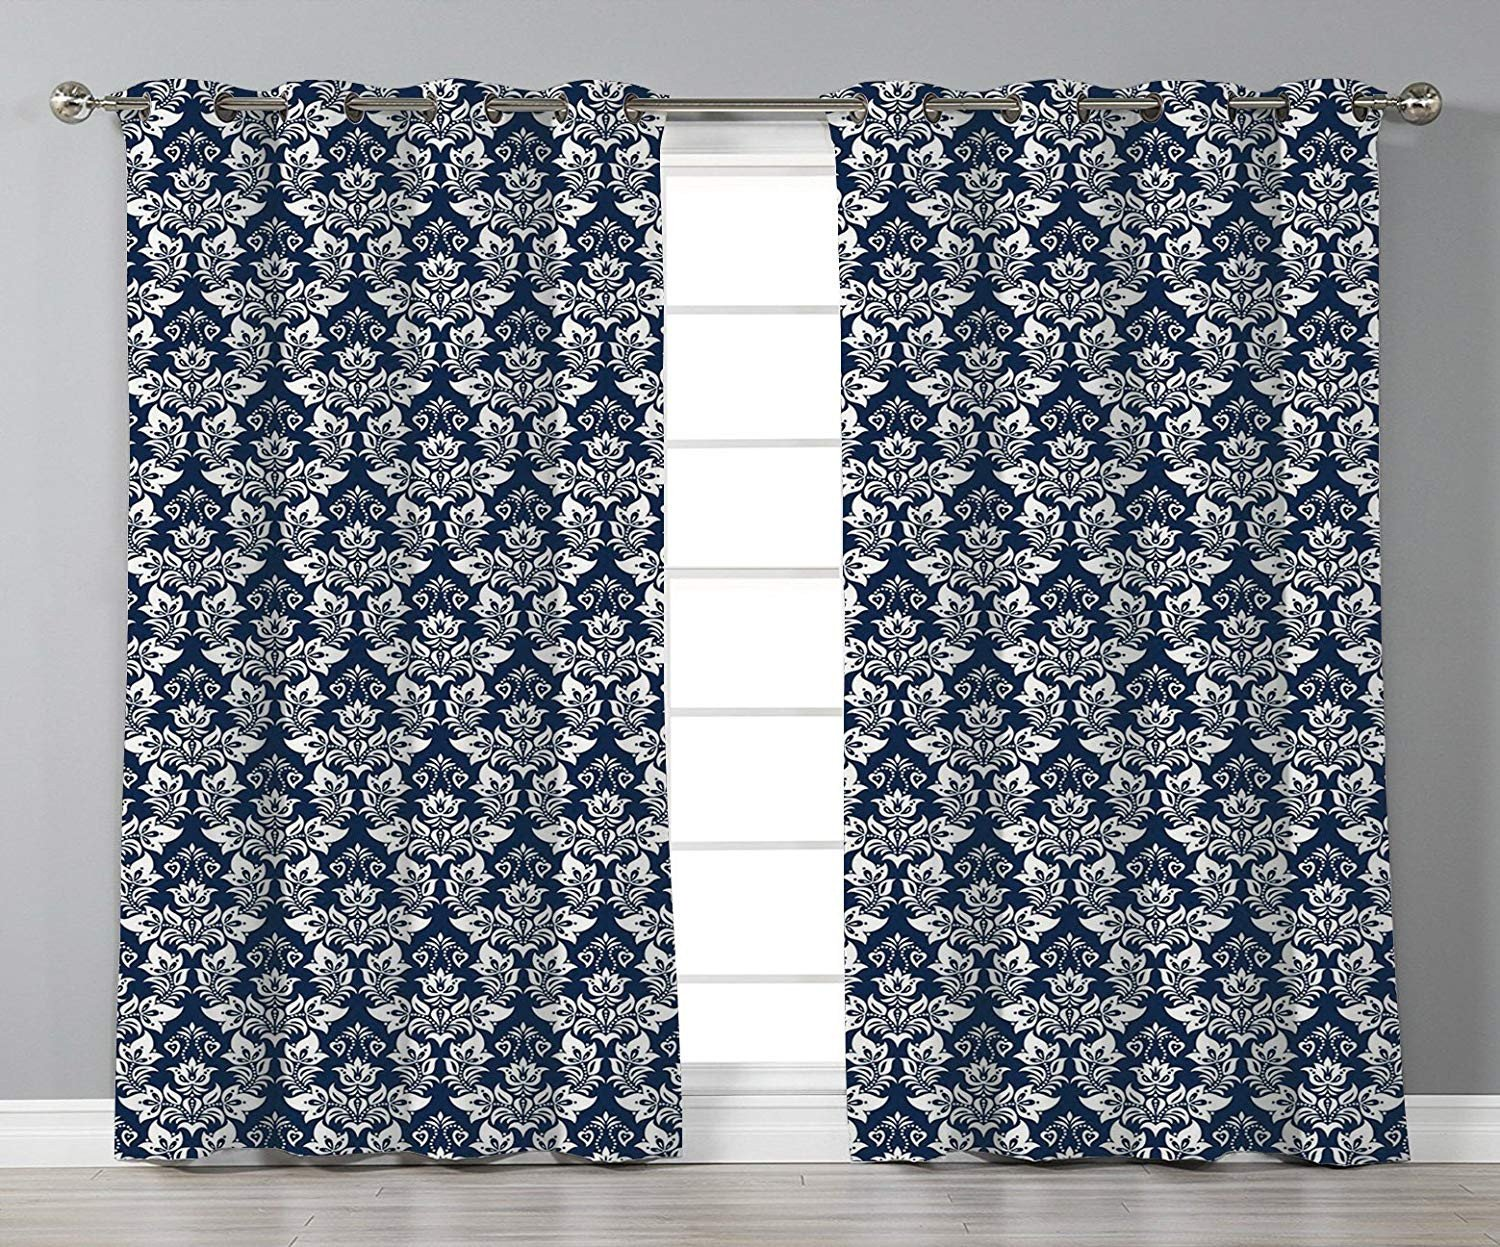 Navy Blue Curtains for Bedroom Awesome Amazon Stylish Window Curtains Damask Antique Floral